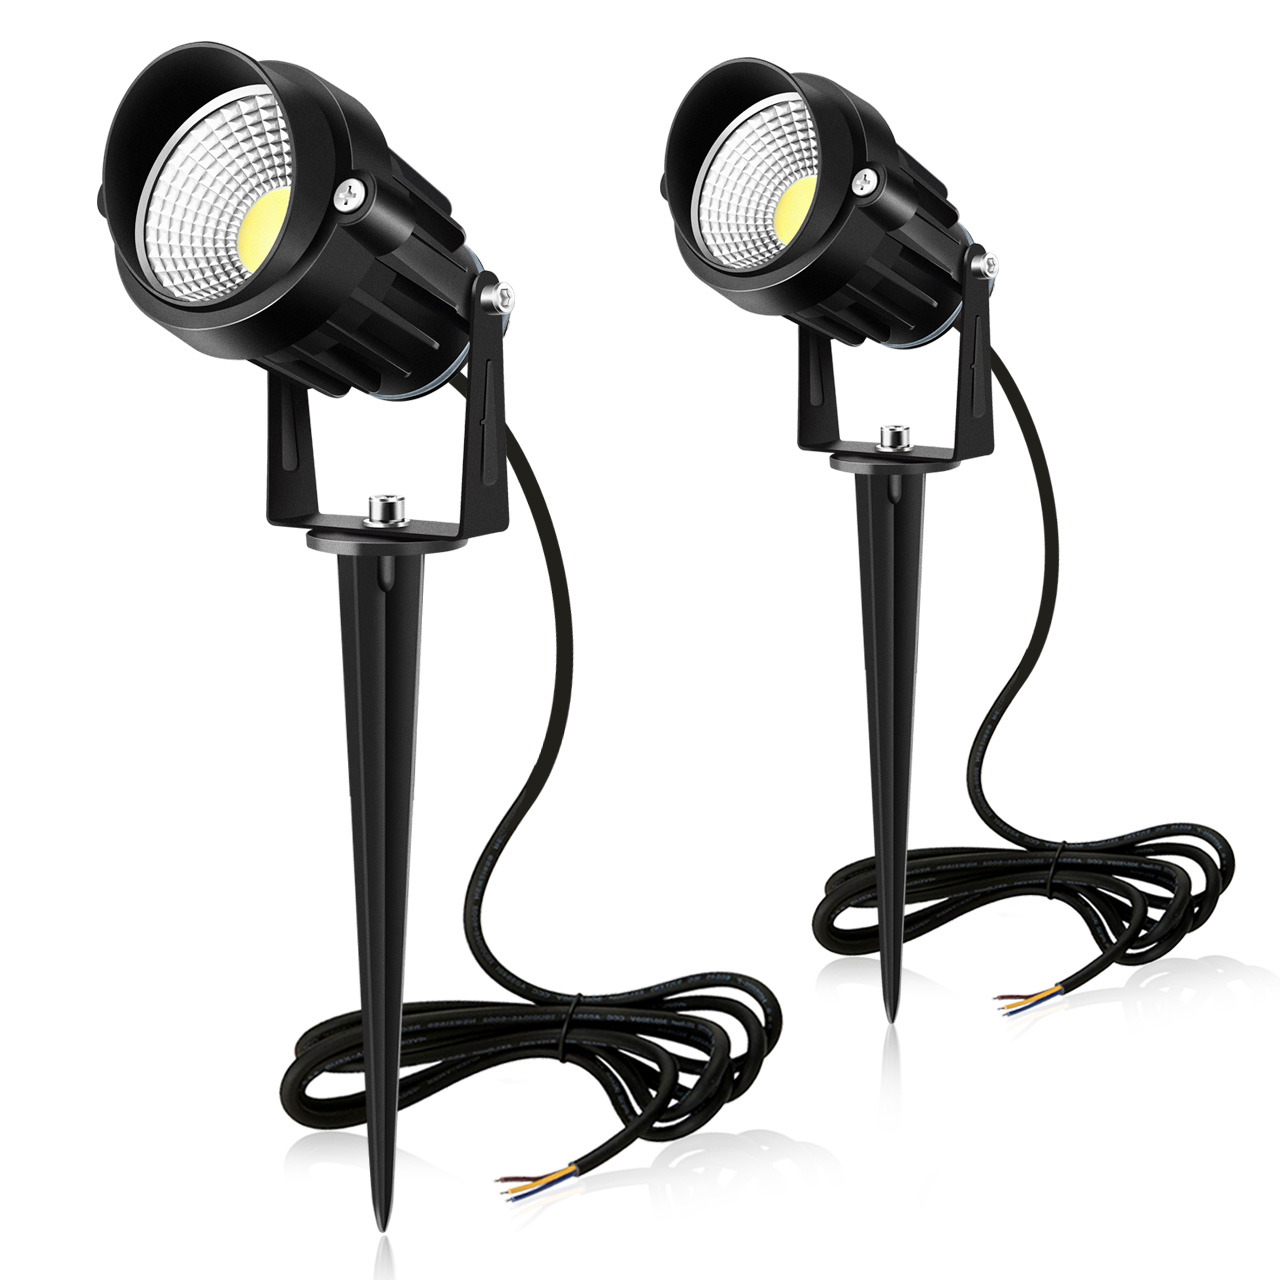 Garden Spotlights Daylight White 2 pack